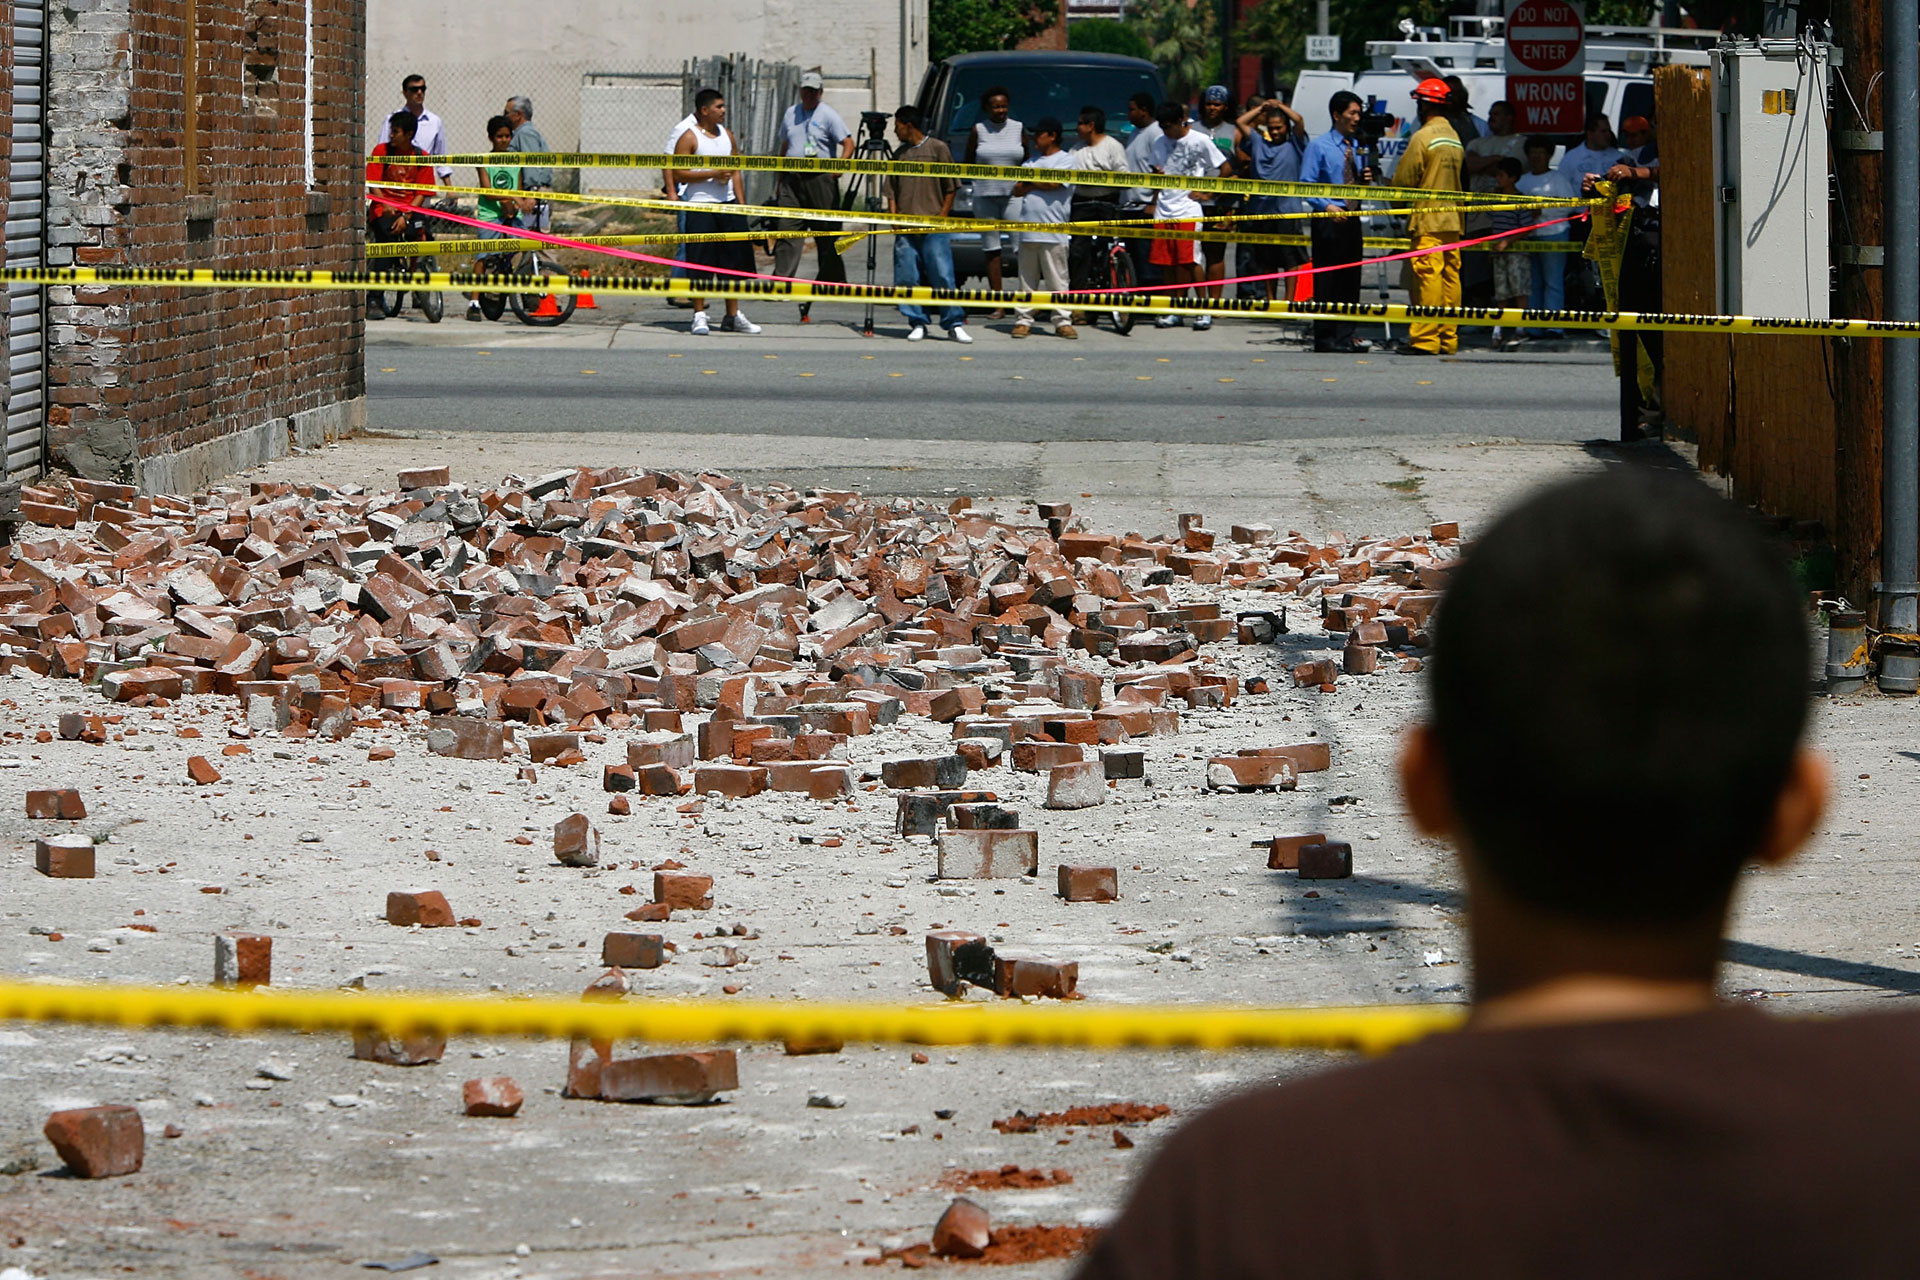 Spectators look at bricks which collapsed into an alley following a magnitude-5.4 earthquake on July 29, 2008 in Pomona.